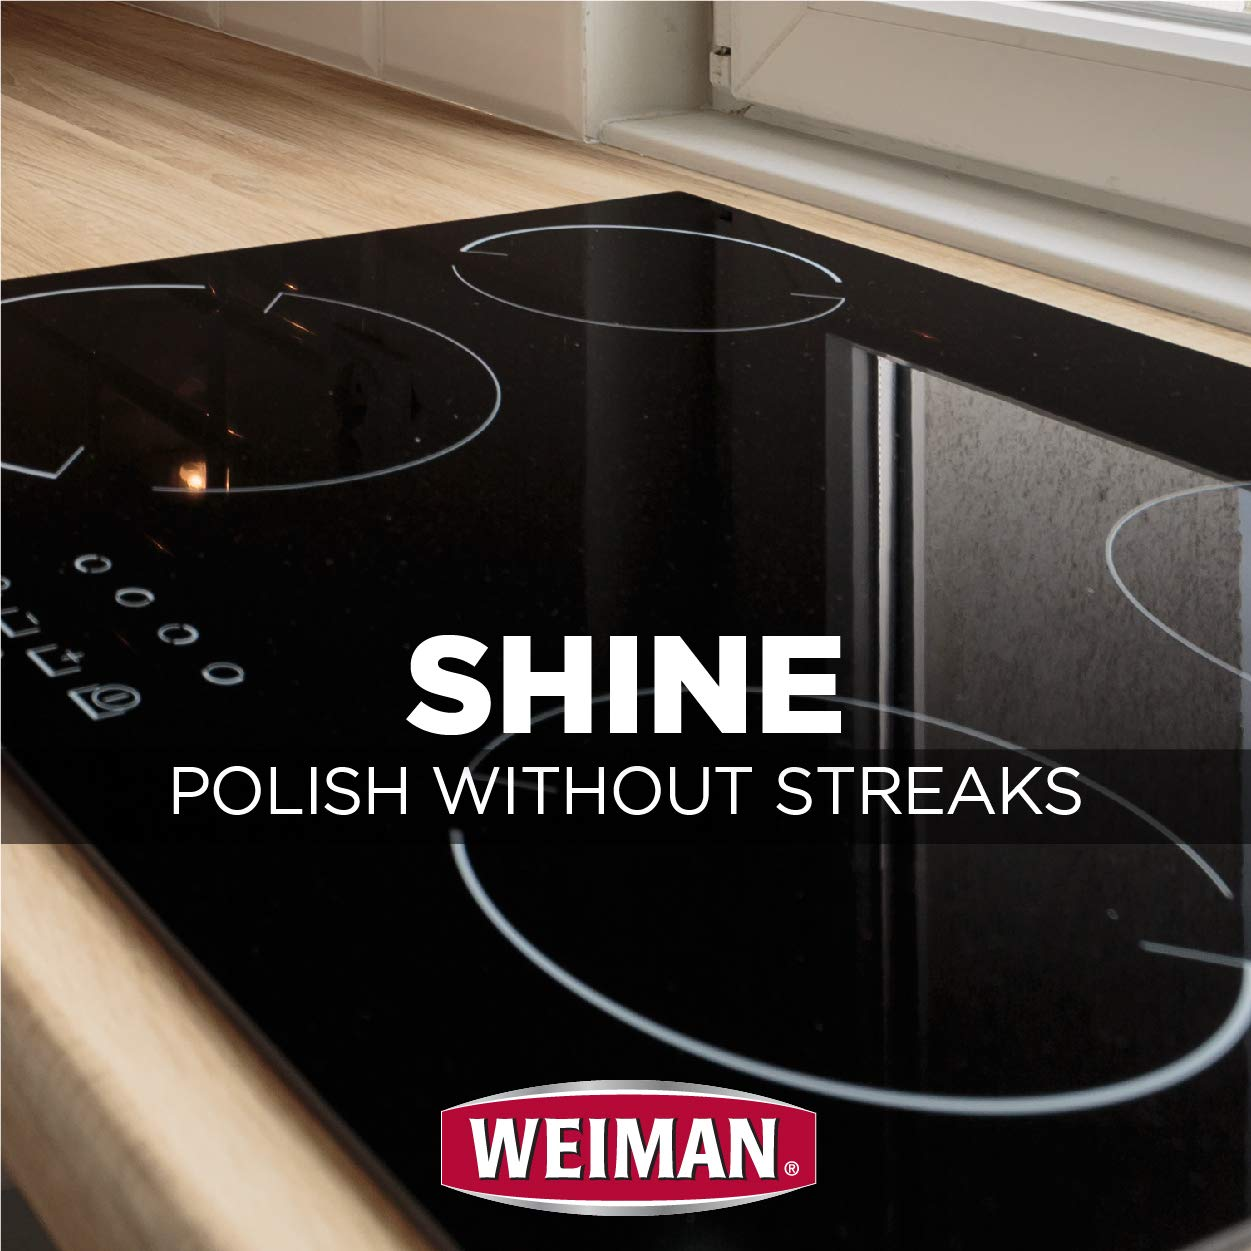 Weiman Ceramic & Glass Cooktop Cleaner - 22 Ounce [6 Pack] - Daily Use Professional Home Kitchen Cooktop Cleaner and Polish Use On Induction Ceramic Gas Portable Electric by Weiman (Image #6)